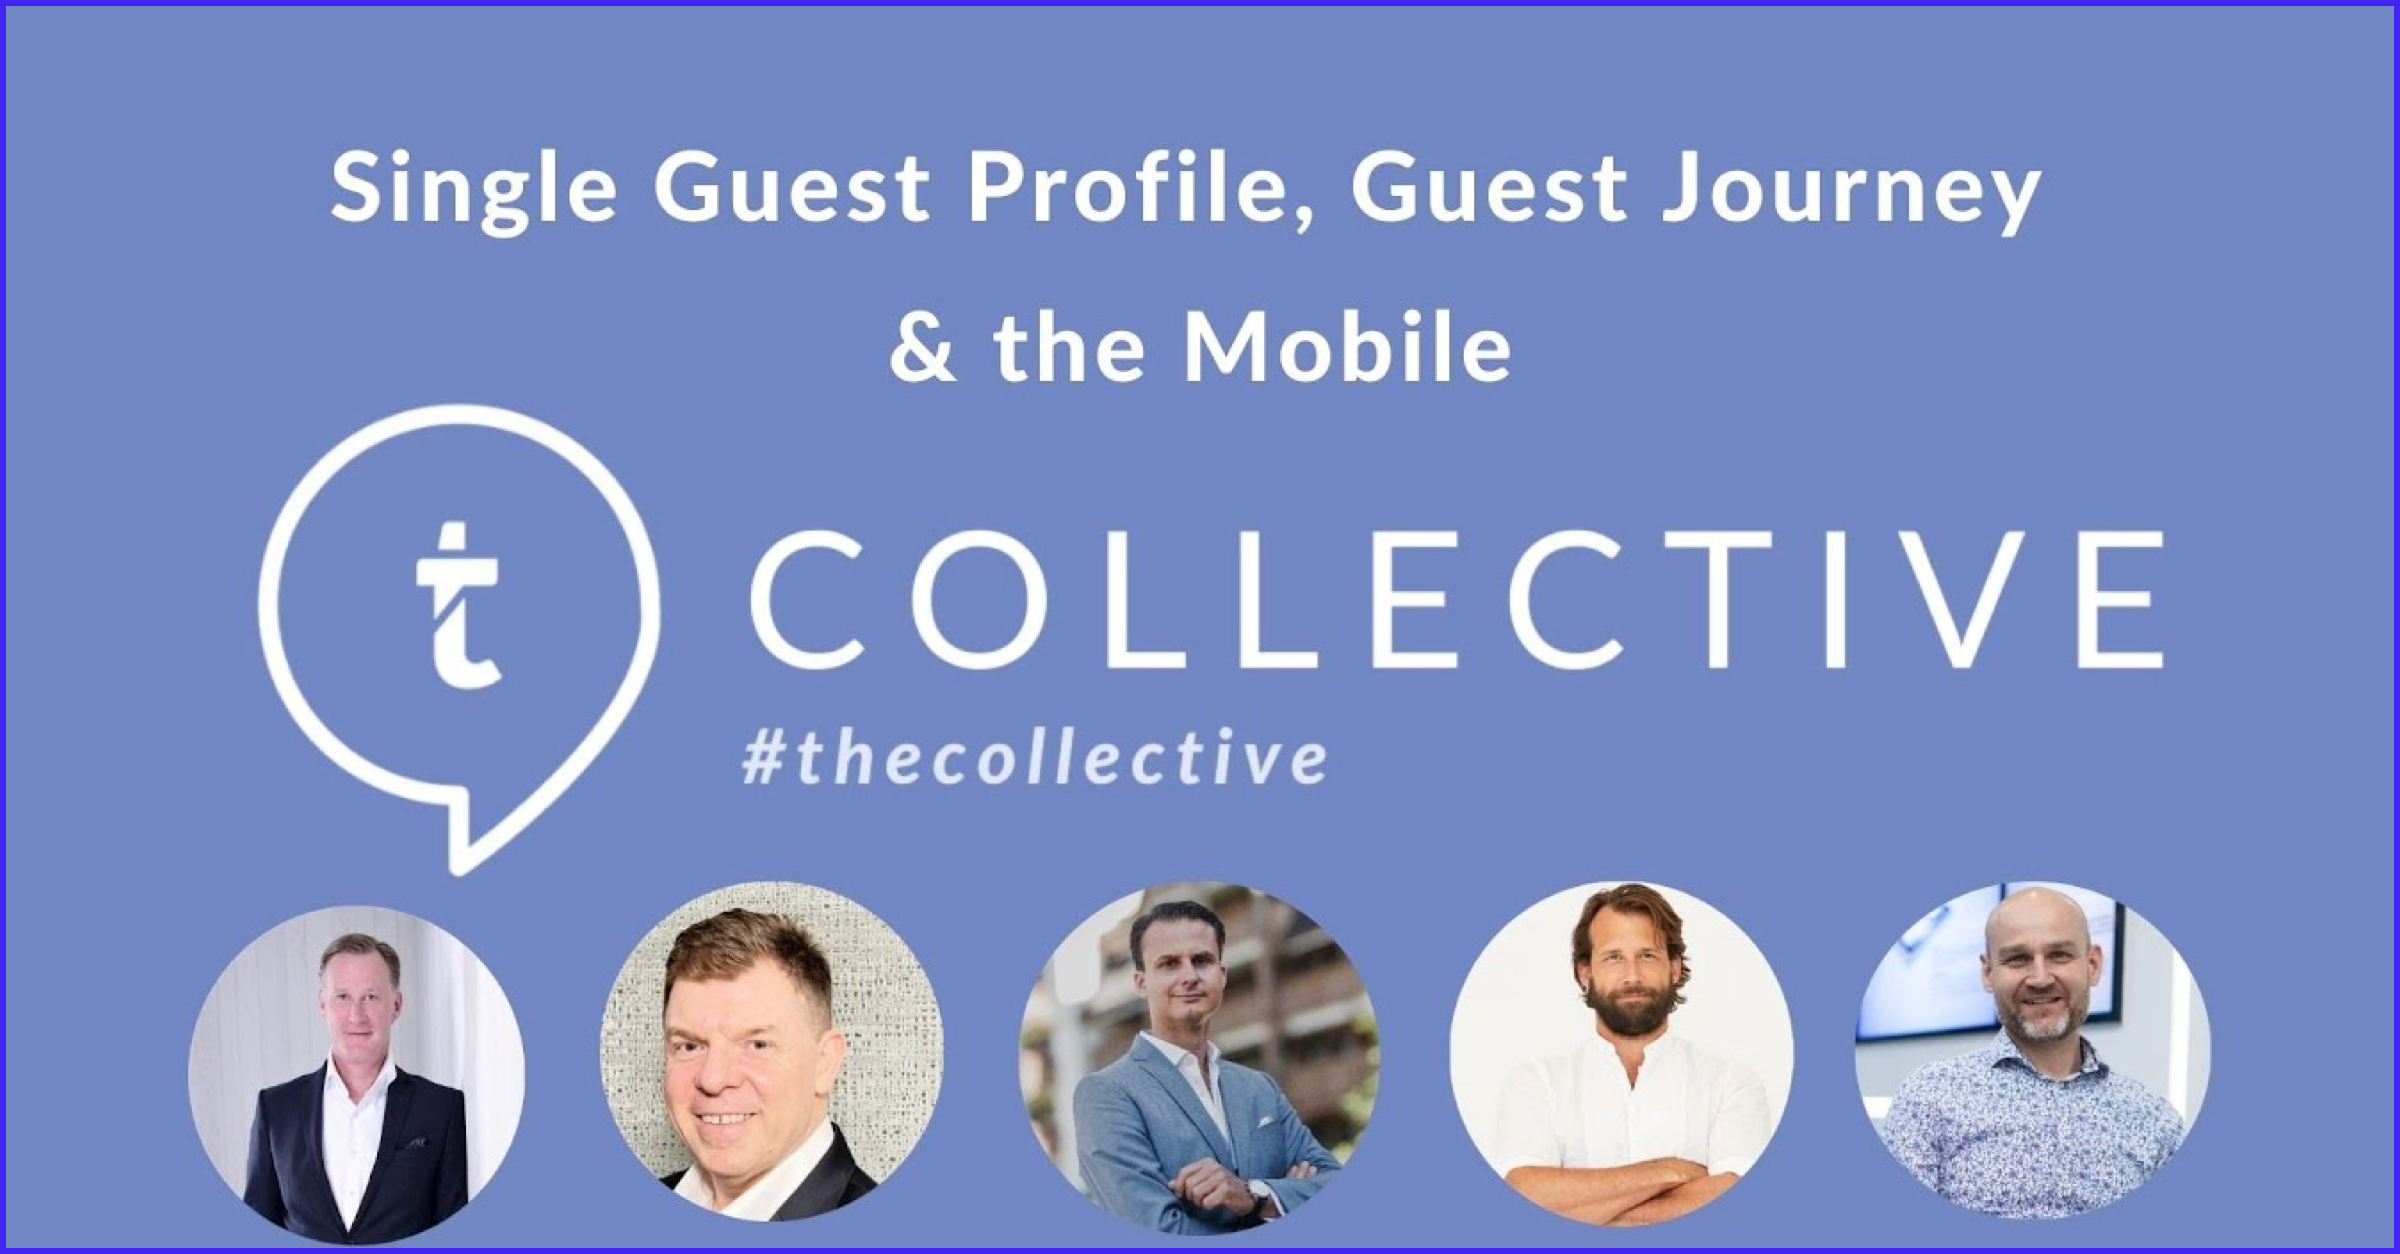 Single guest profile, customer journey and mobile in hospitality (COLLECTIVE by Te...